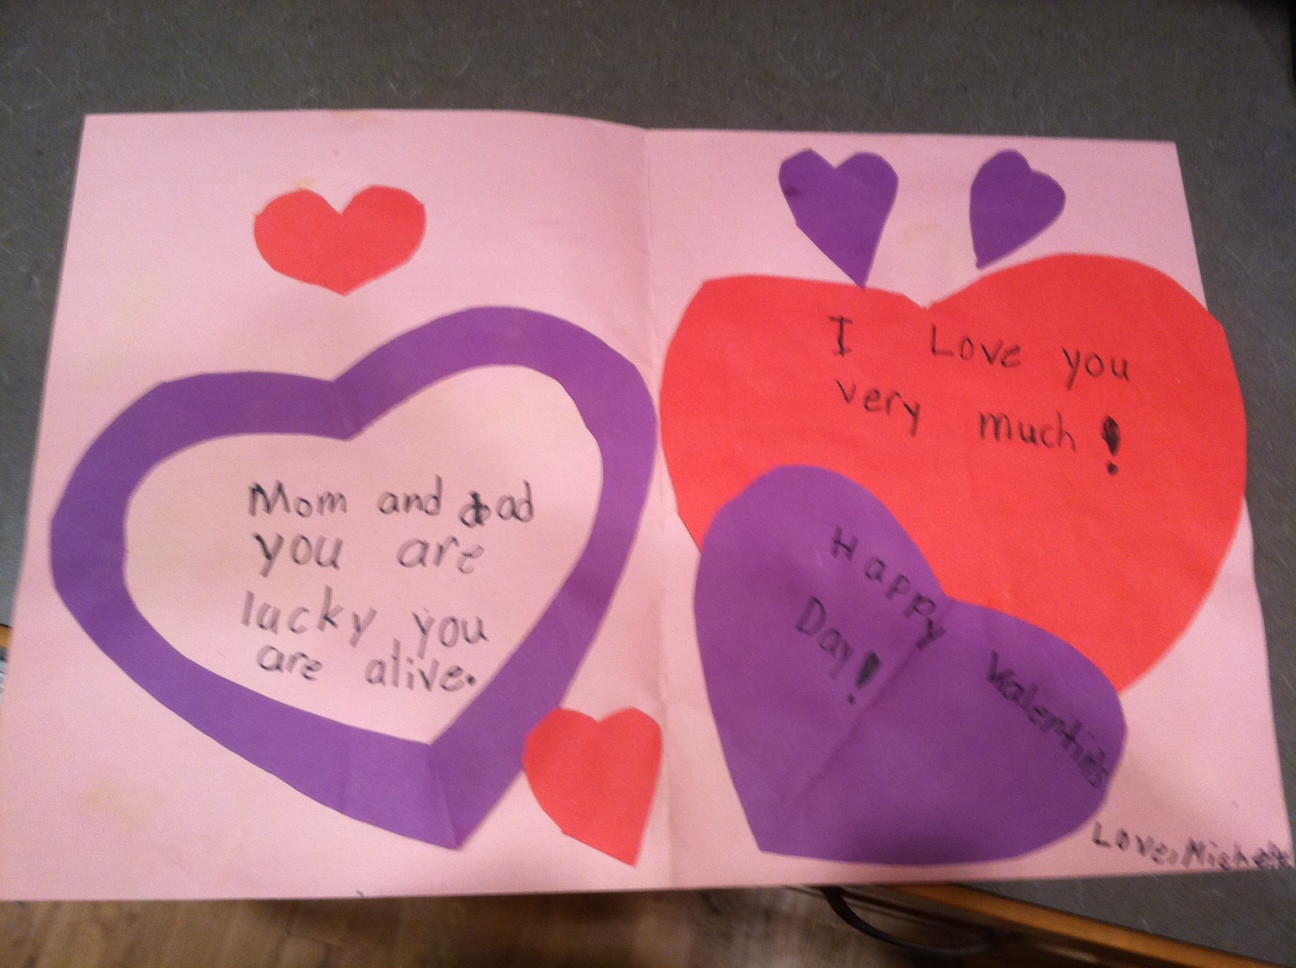 The most unintentionally threatening Valentine's Day card ever written by a child.